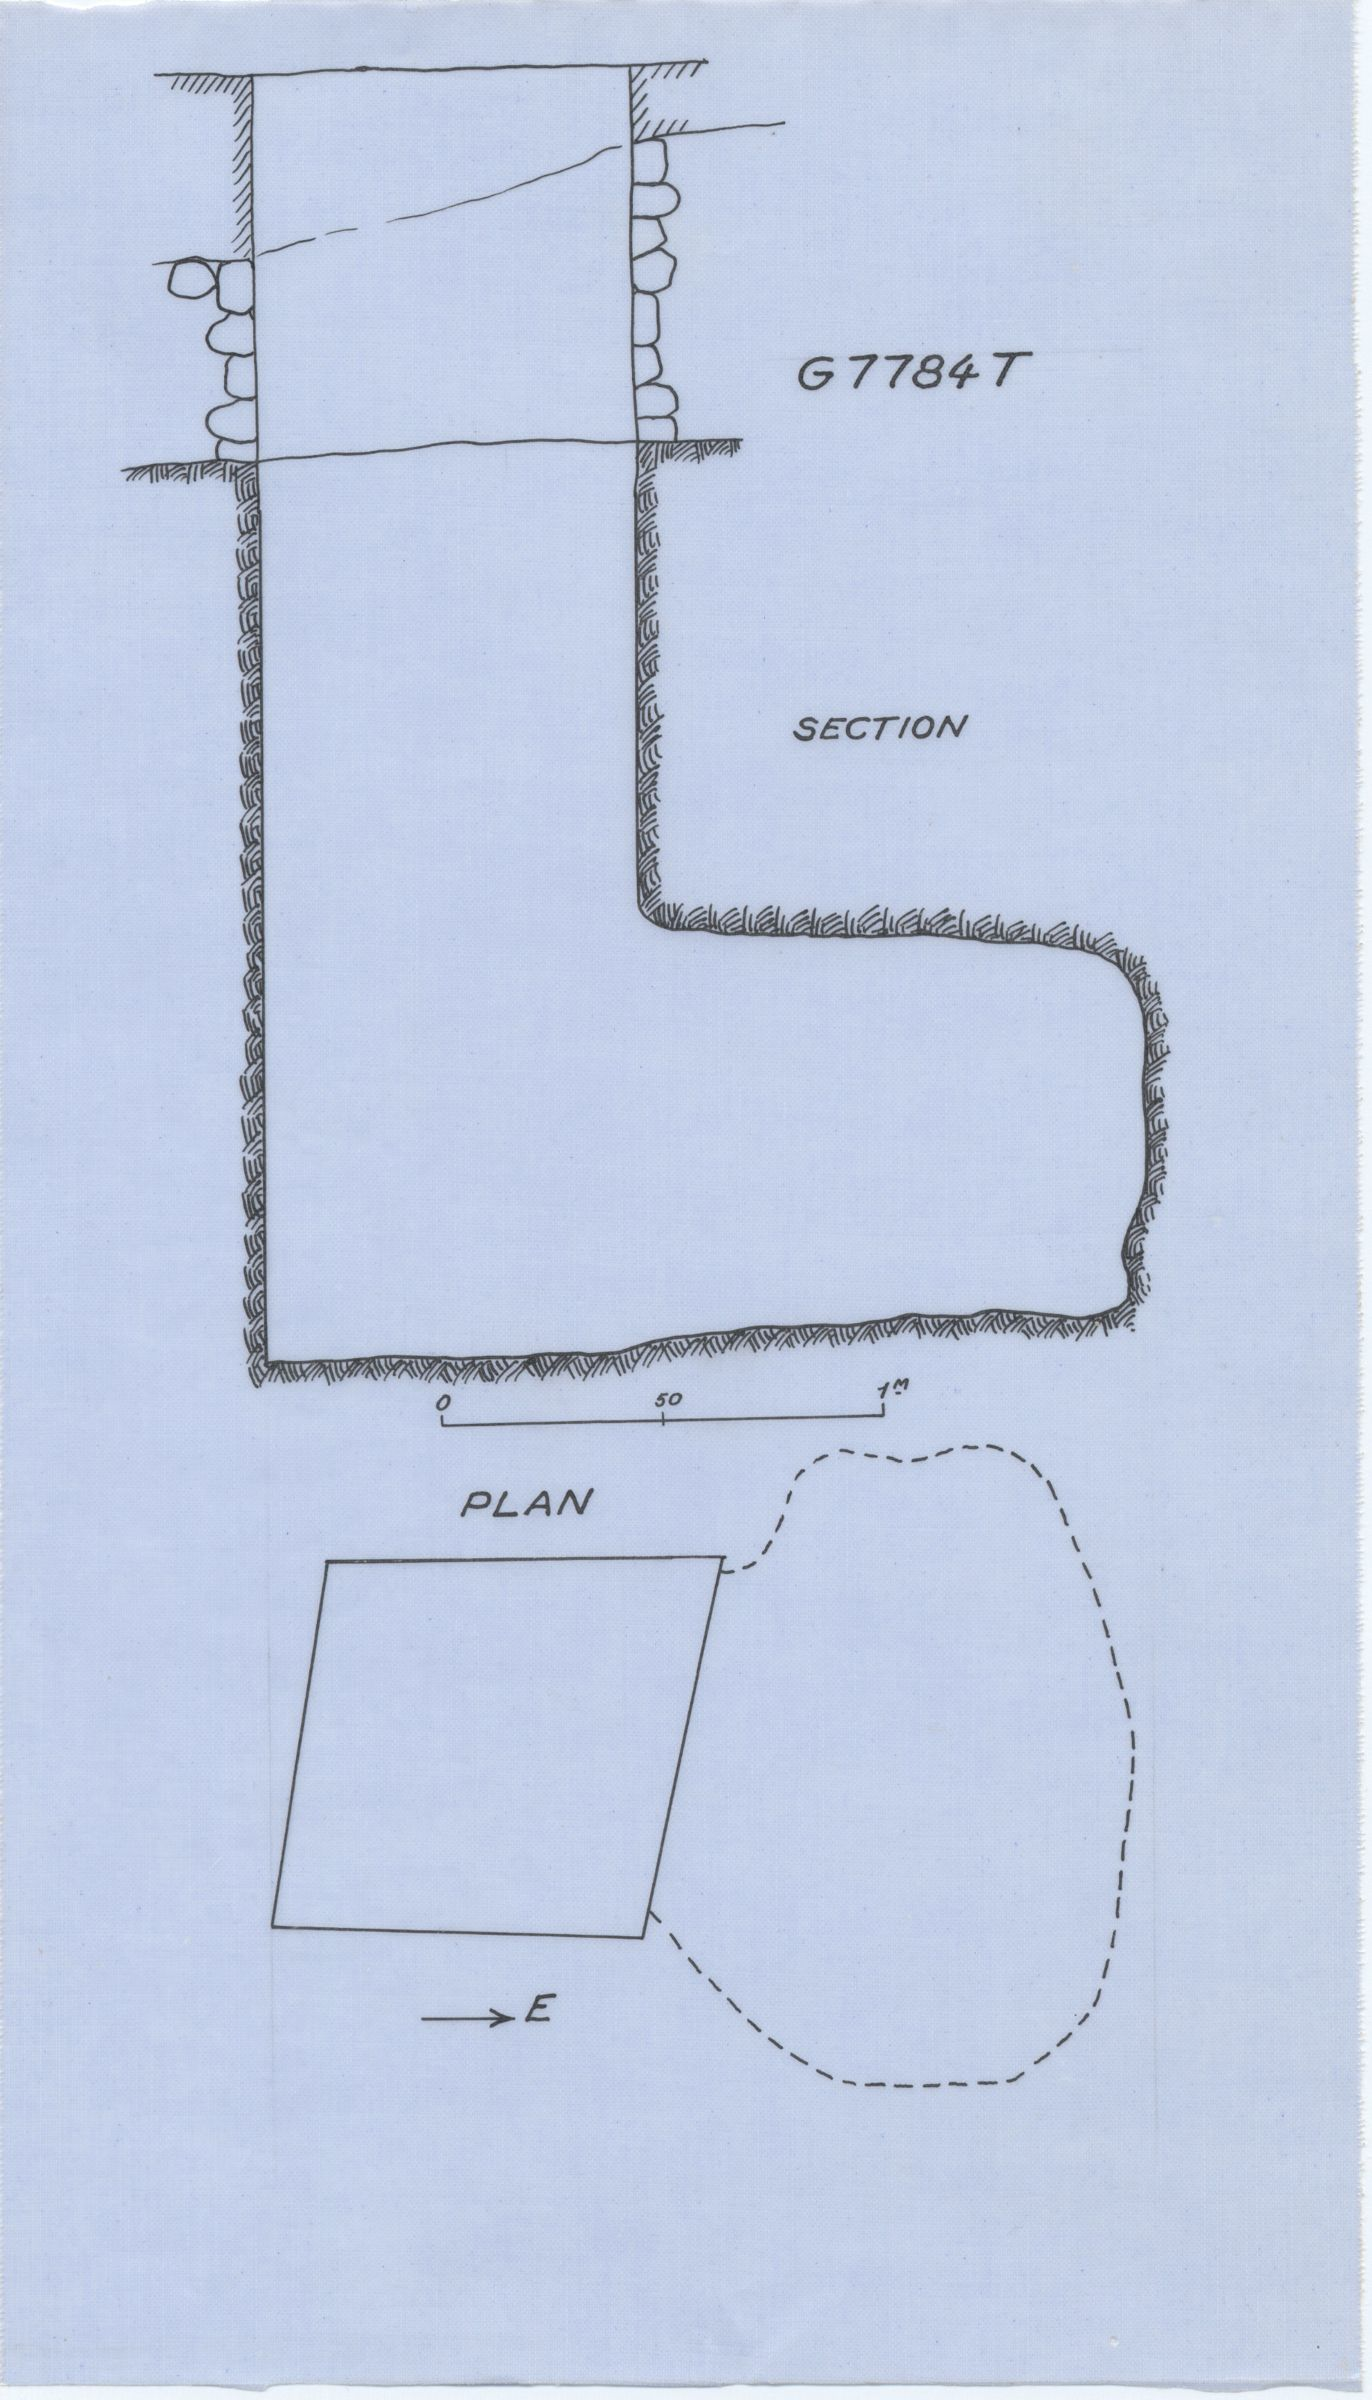 Maps and plans: G 7784, Shaft T